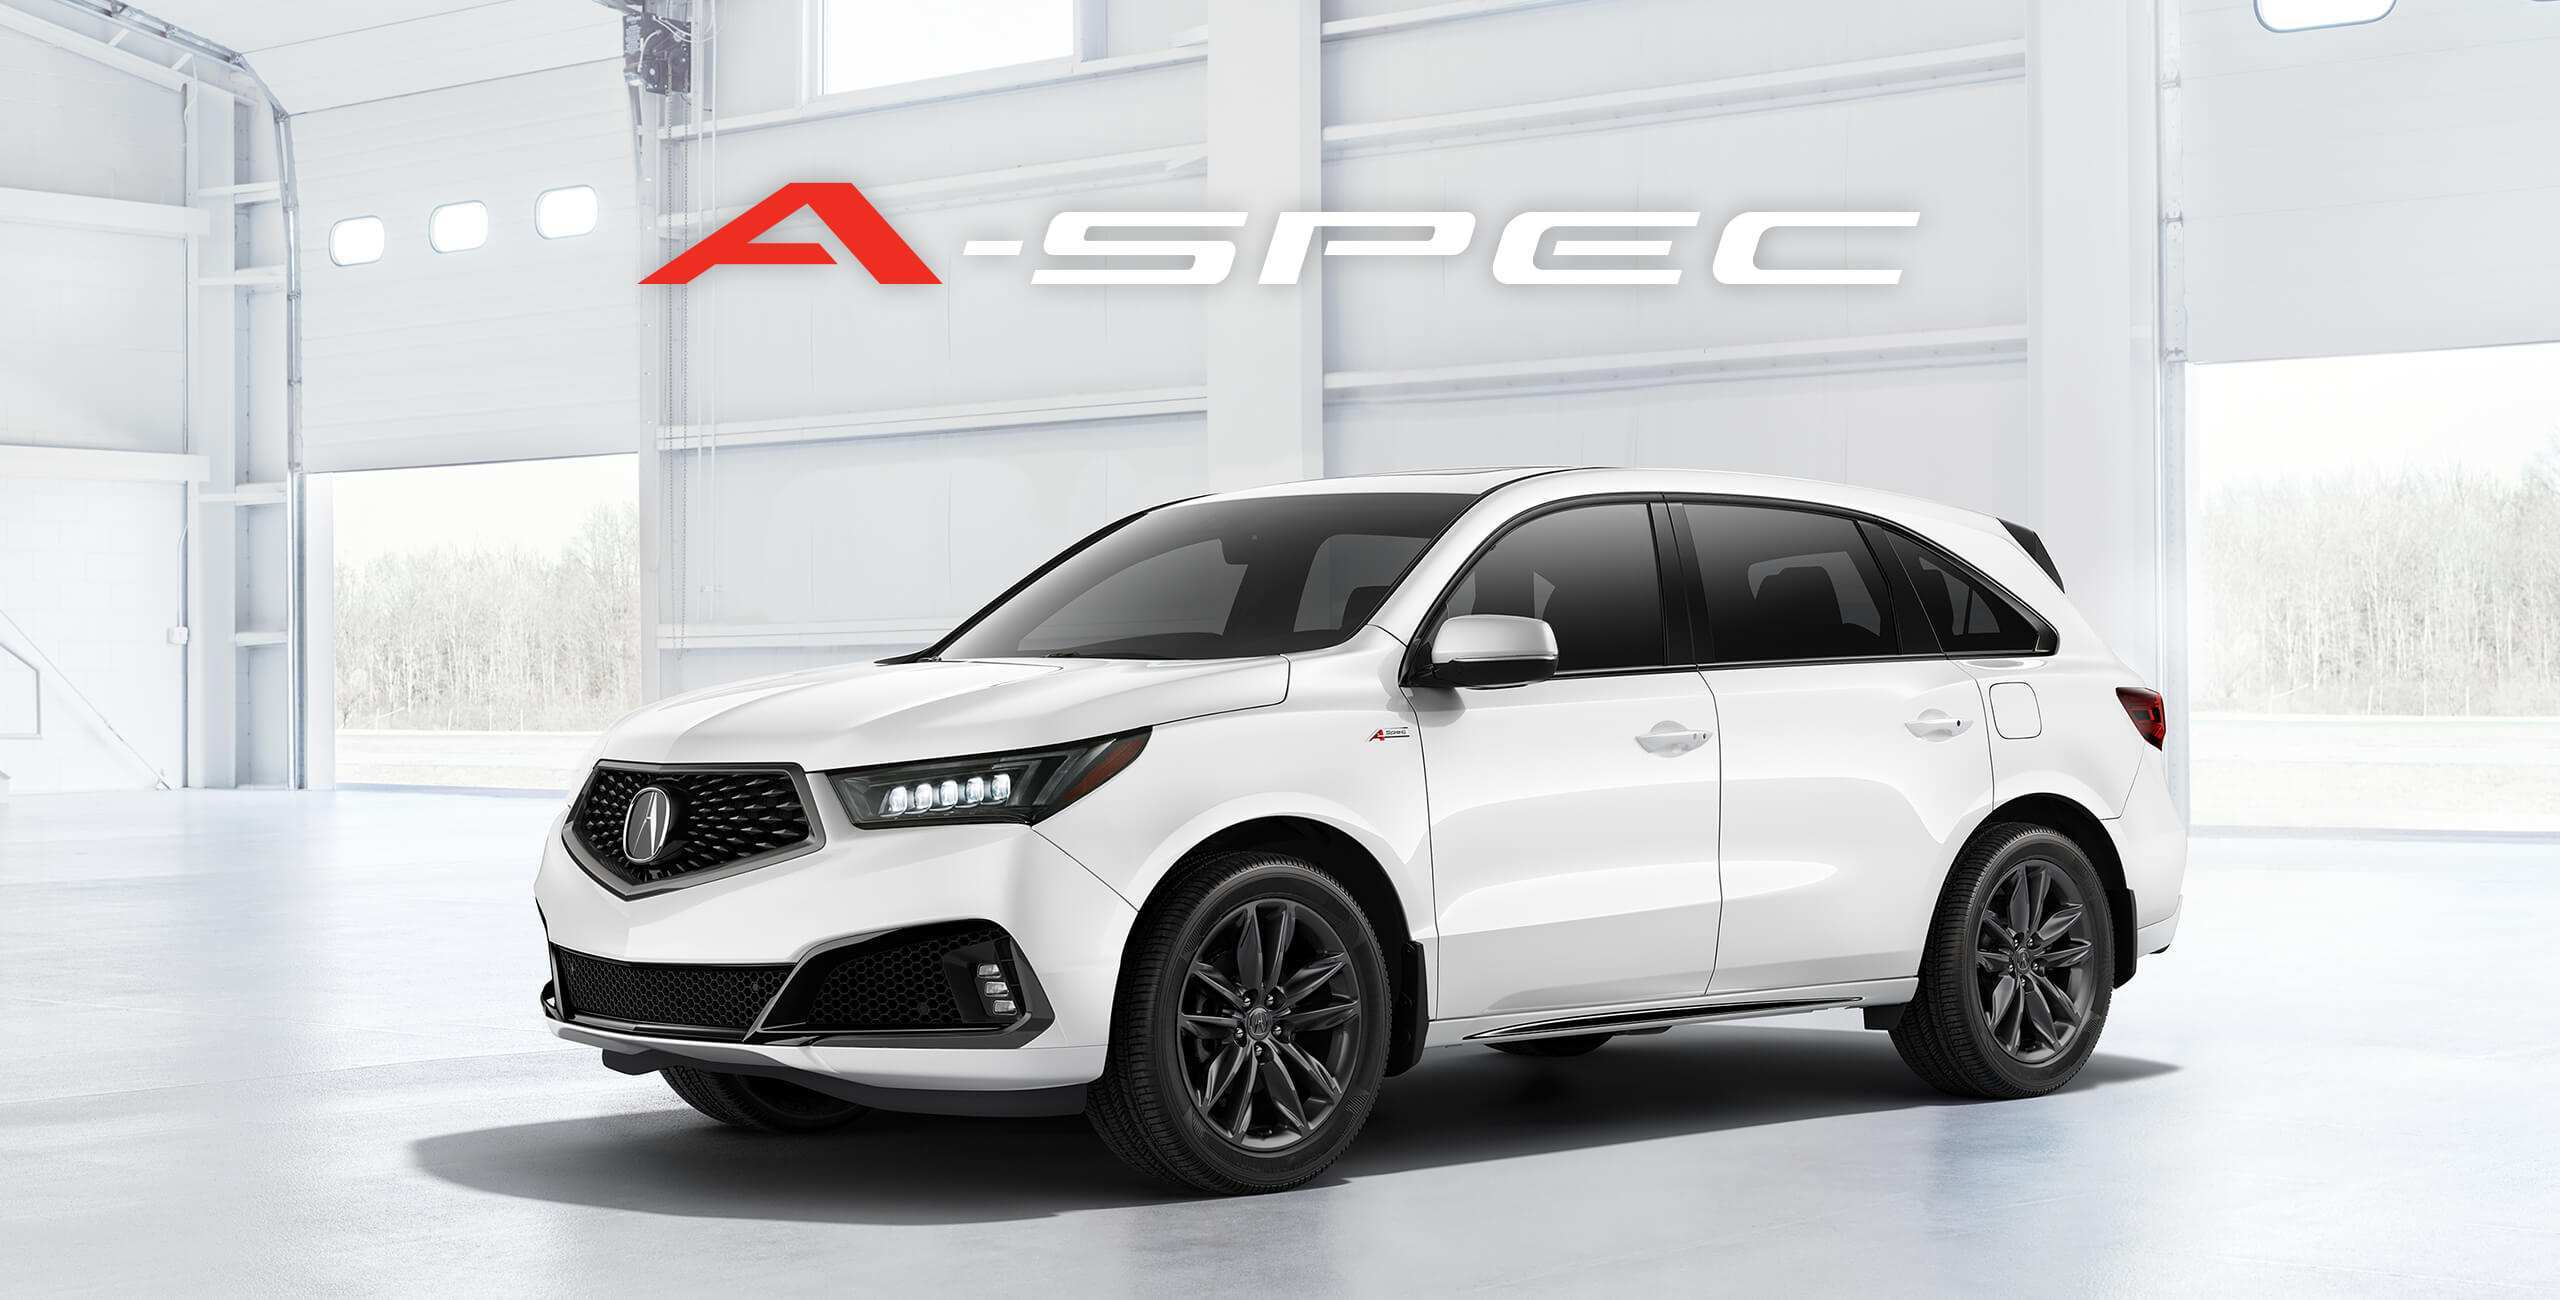 37 Best Review Acura Mdx 2020 Price Price for Acura Mdx 2020 Price